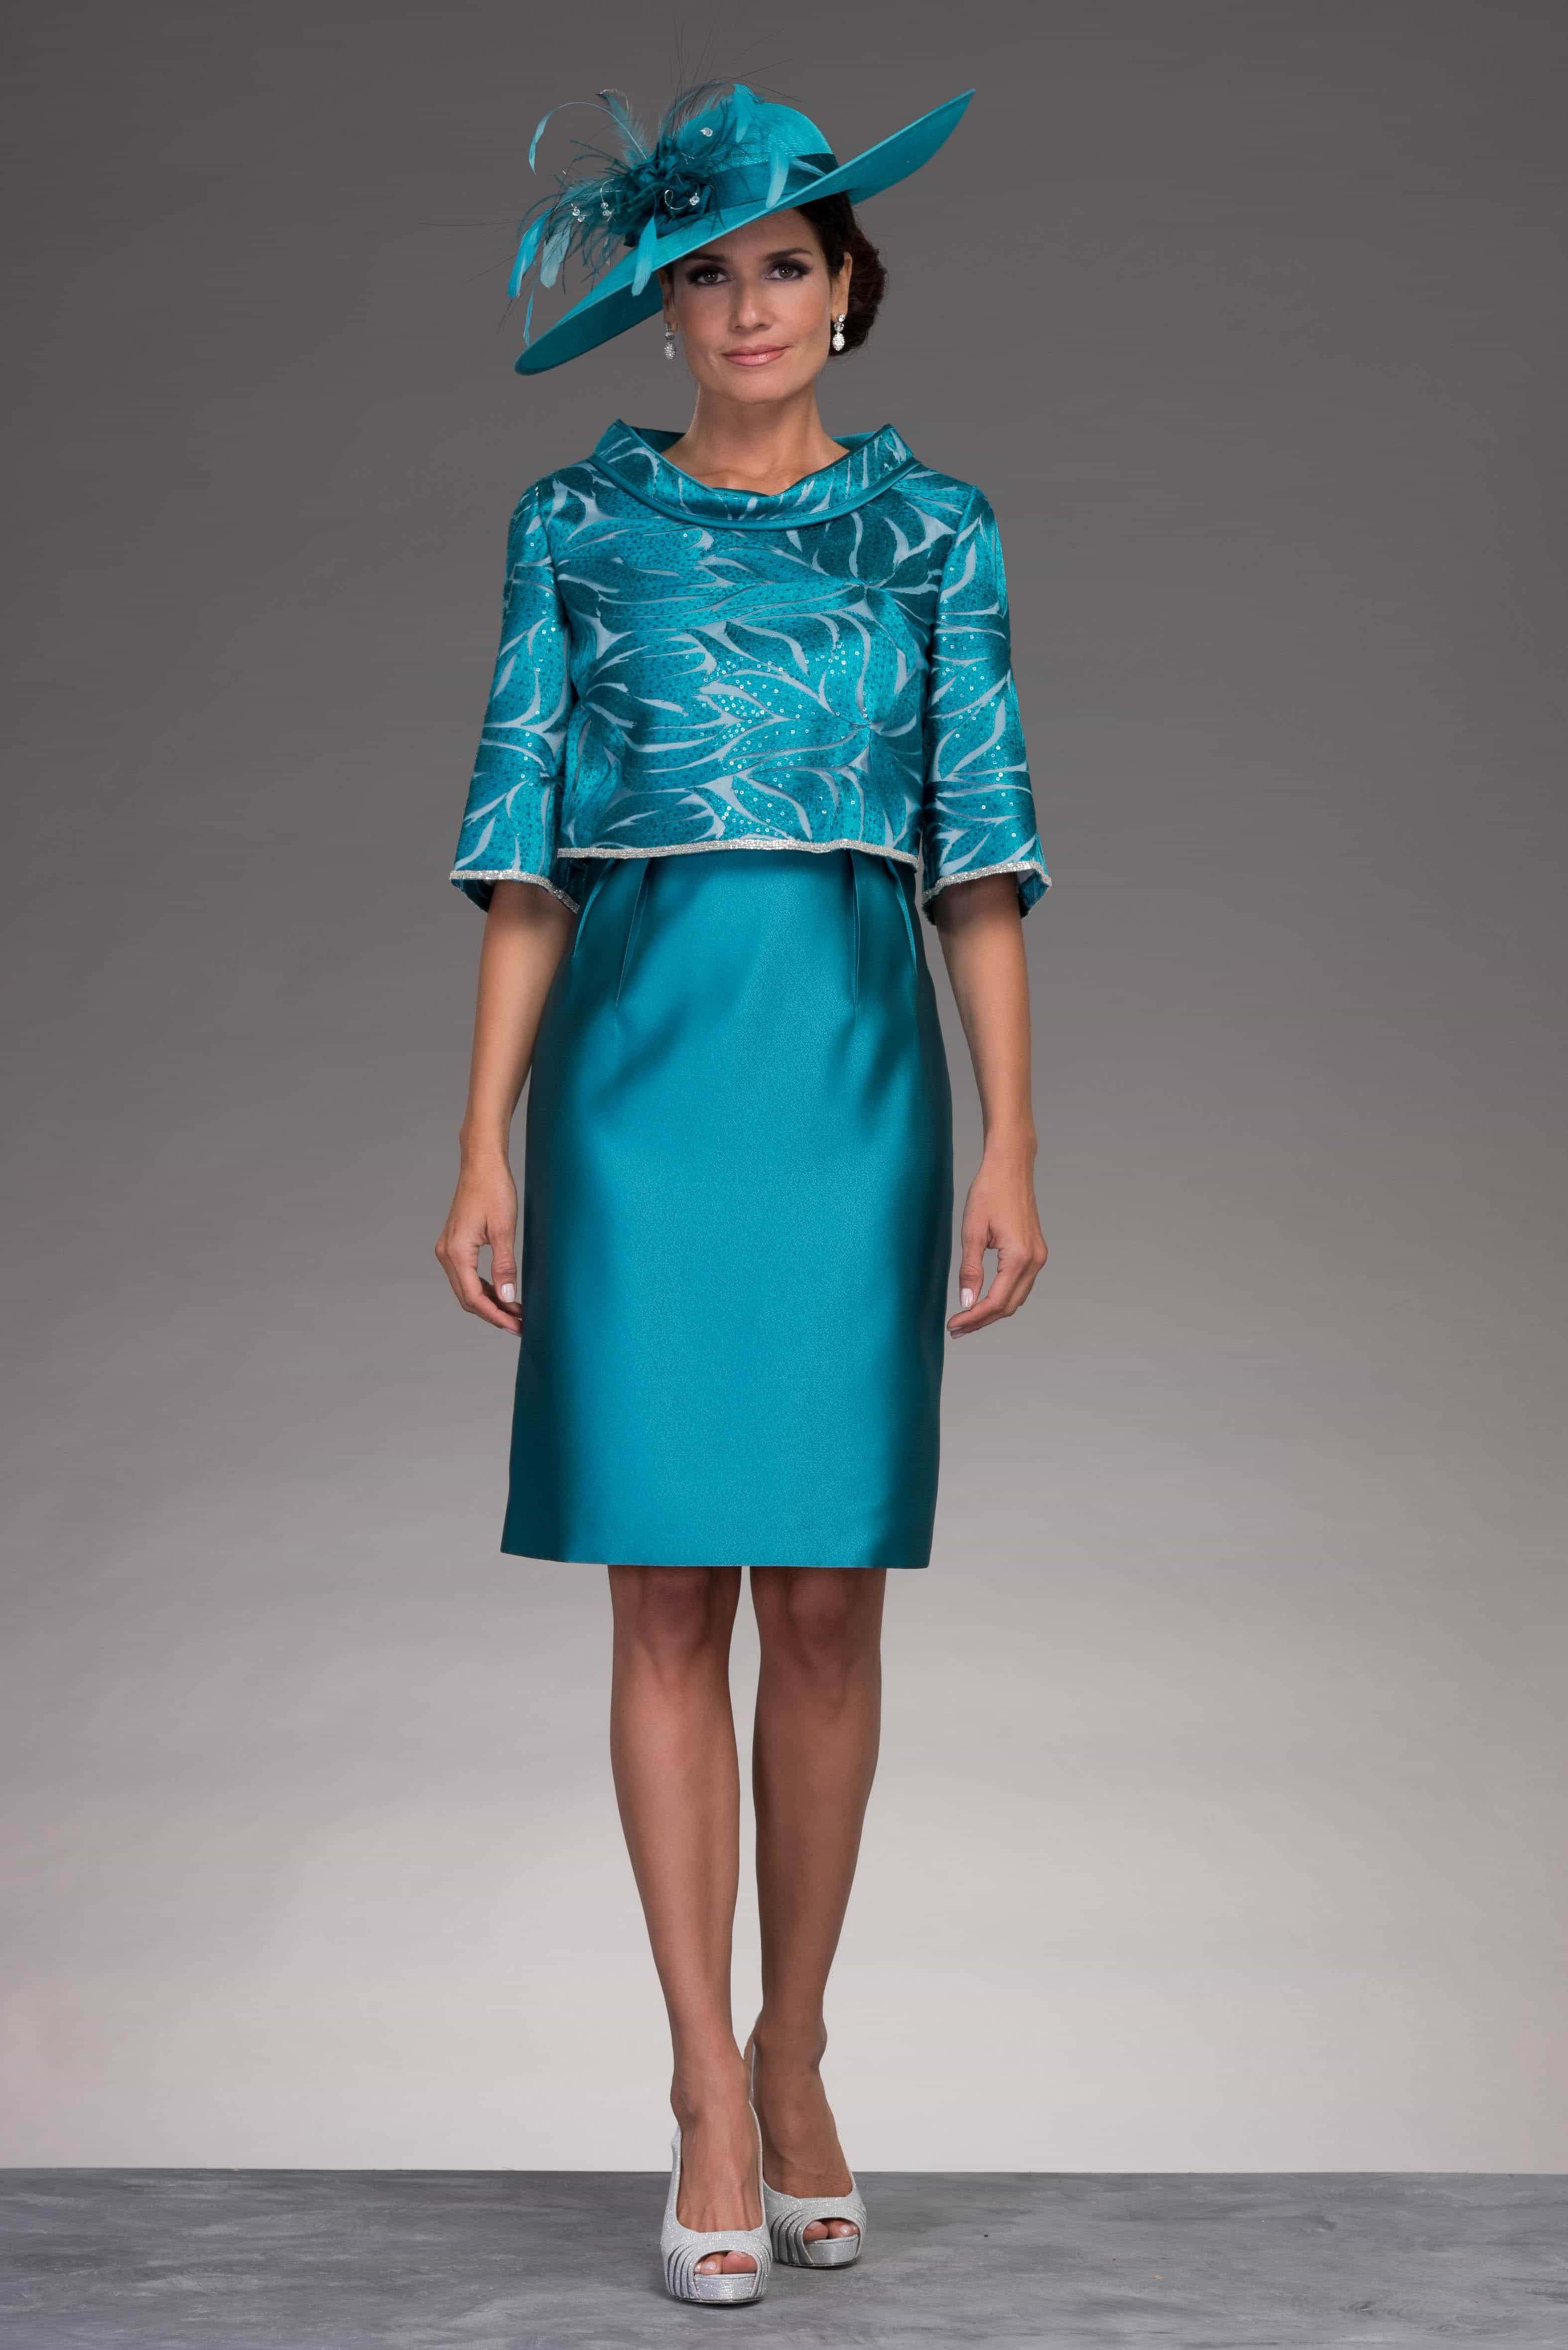 Catherine2017-6508 fixed-2 | MoB outfits | Pinterest | Weddings